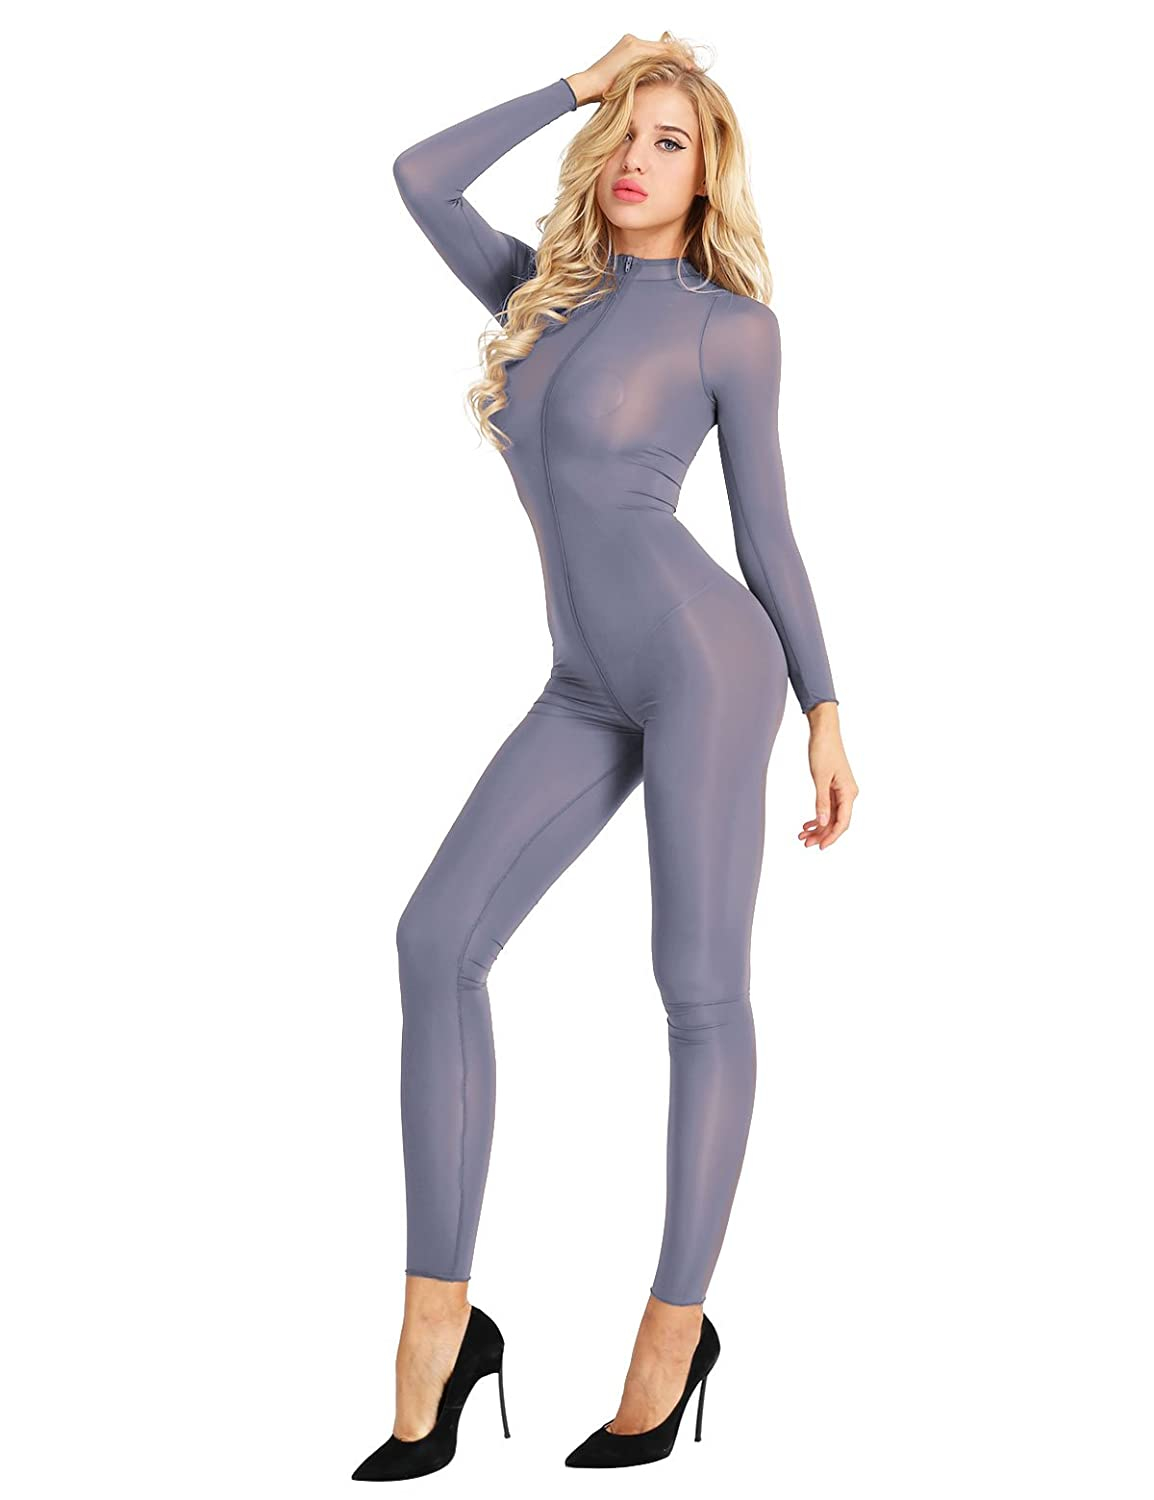 CHICTRY Women's Long Sleeve Double Zipper Sheer Mesh Bodysuit Jumpsuit Catsuit